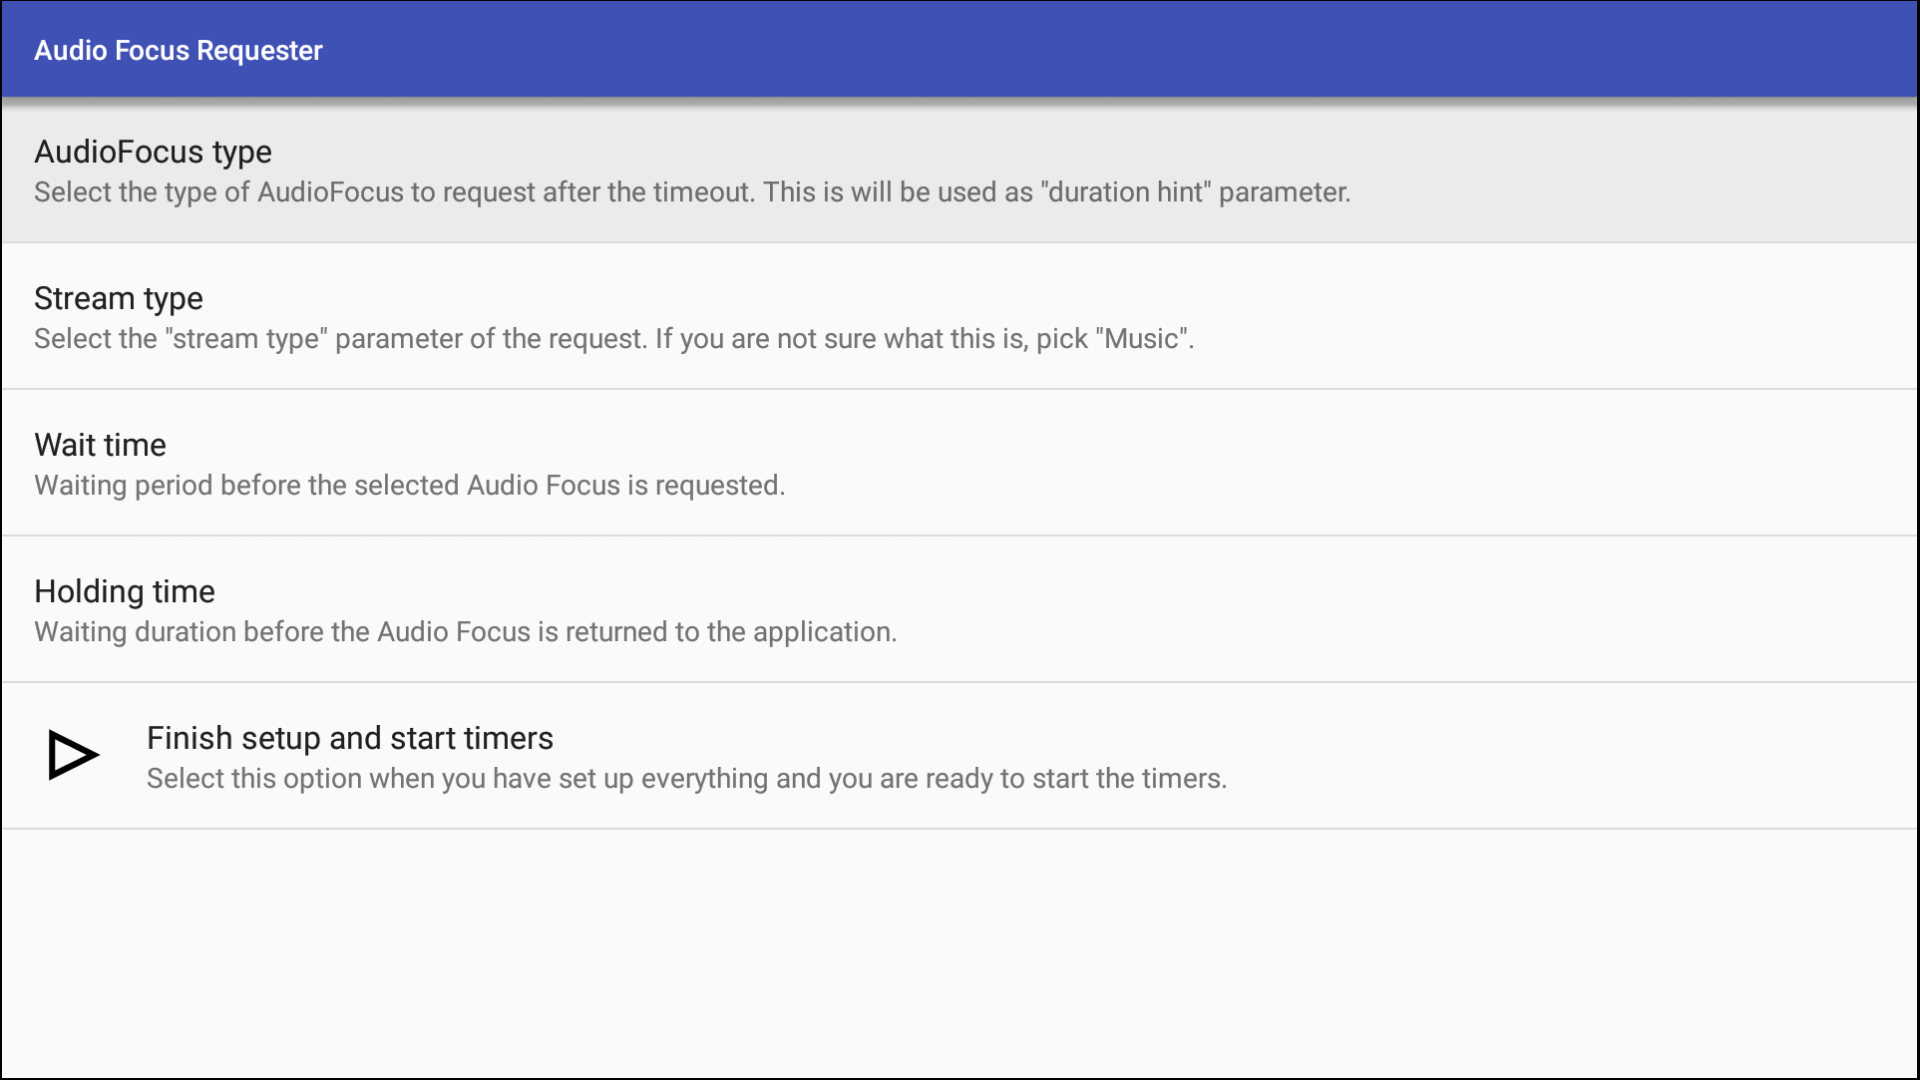 Audio Focus Requester tool's UI